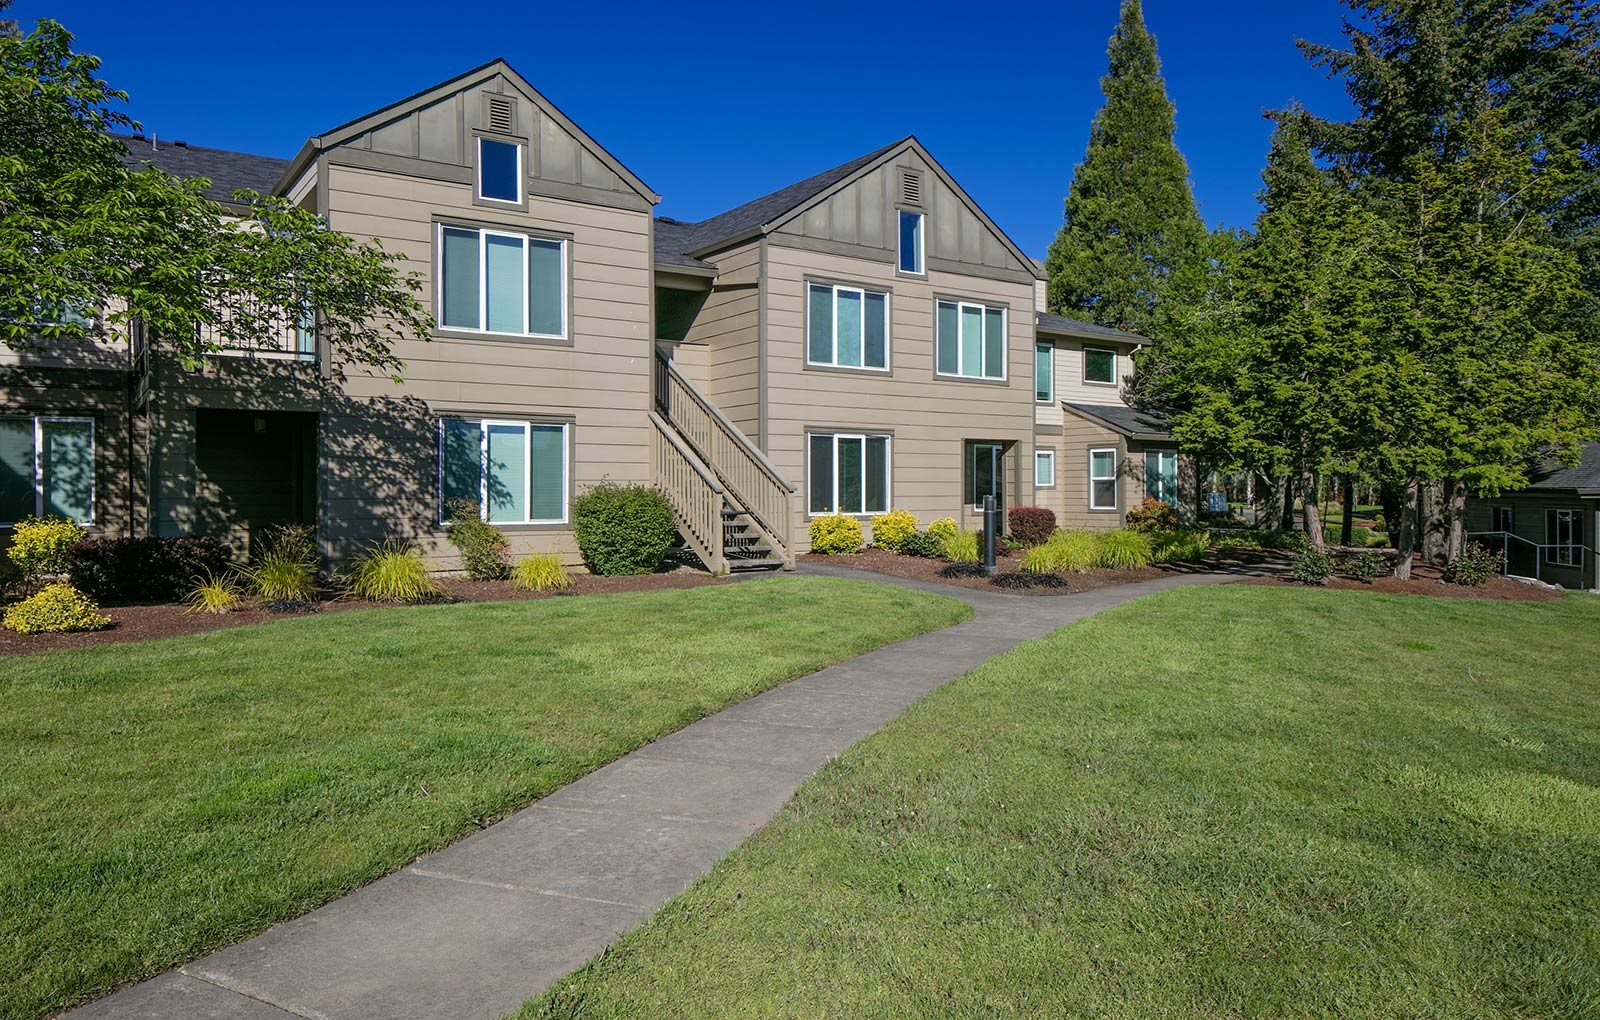 Apartment exterior with walking path at The Club apartments in Hillsboro, OR